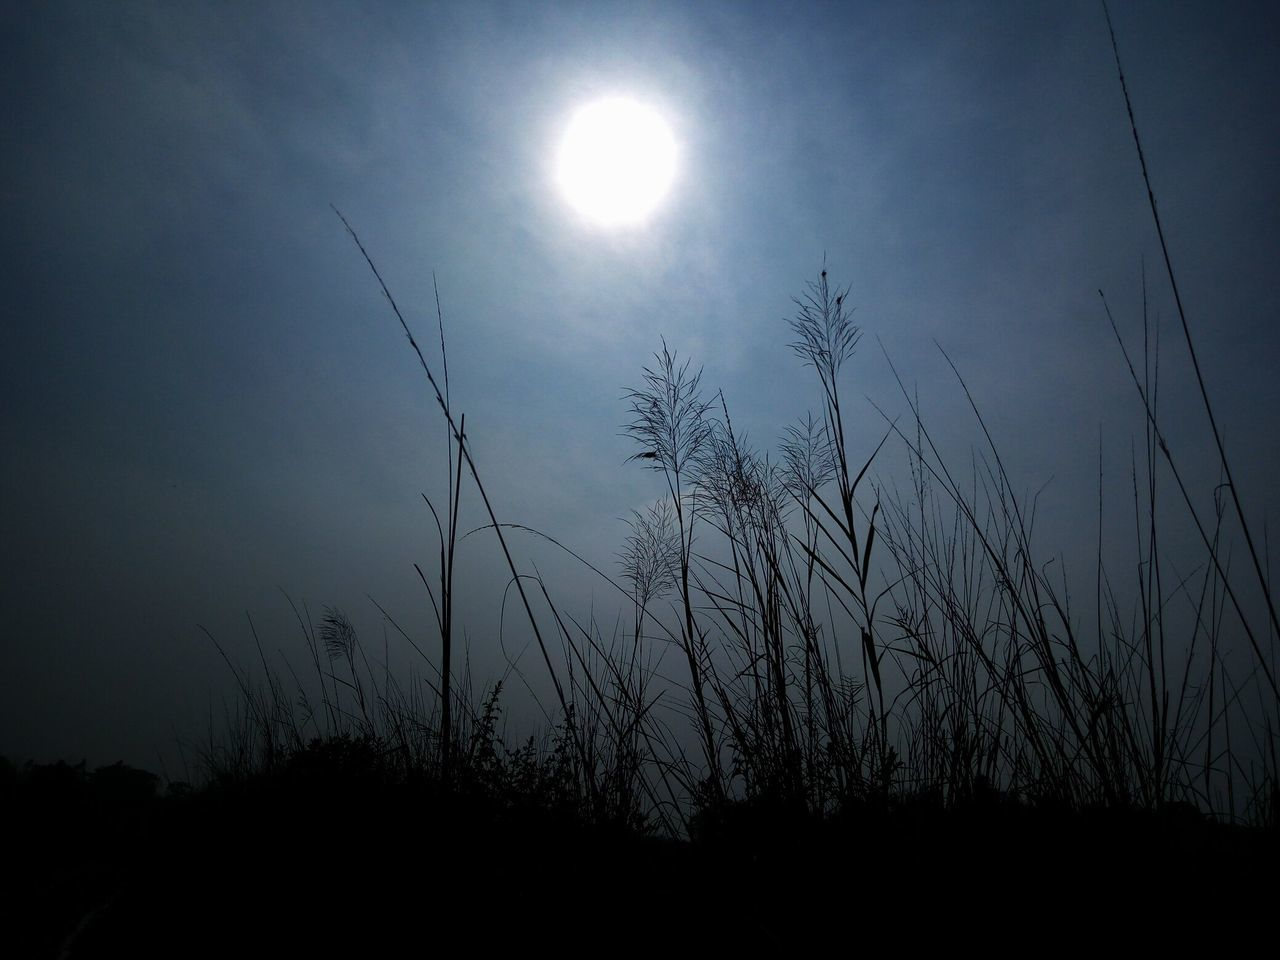 moon, sun, nature, beauty in nature, tranquil scene, tranquility, silhouette, scenics, outdoors, growth, sky, moonlight, no people, plant, low angle view, tree, grass, clear sky